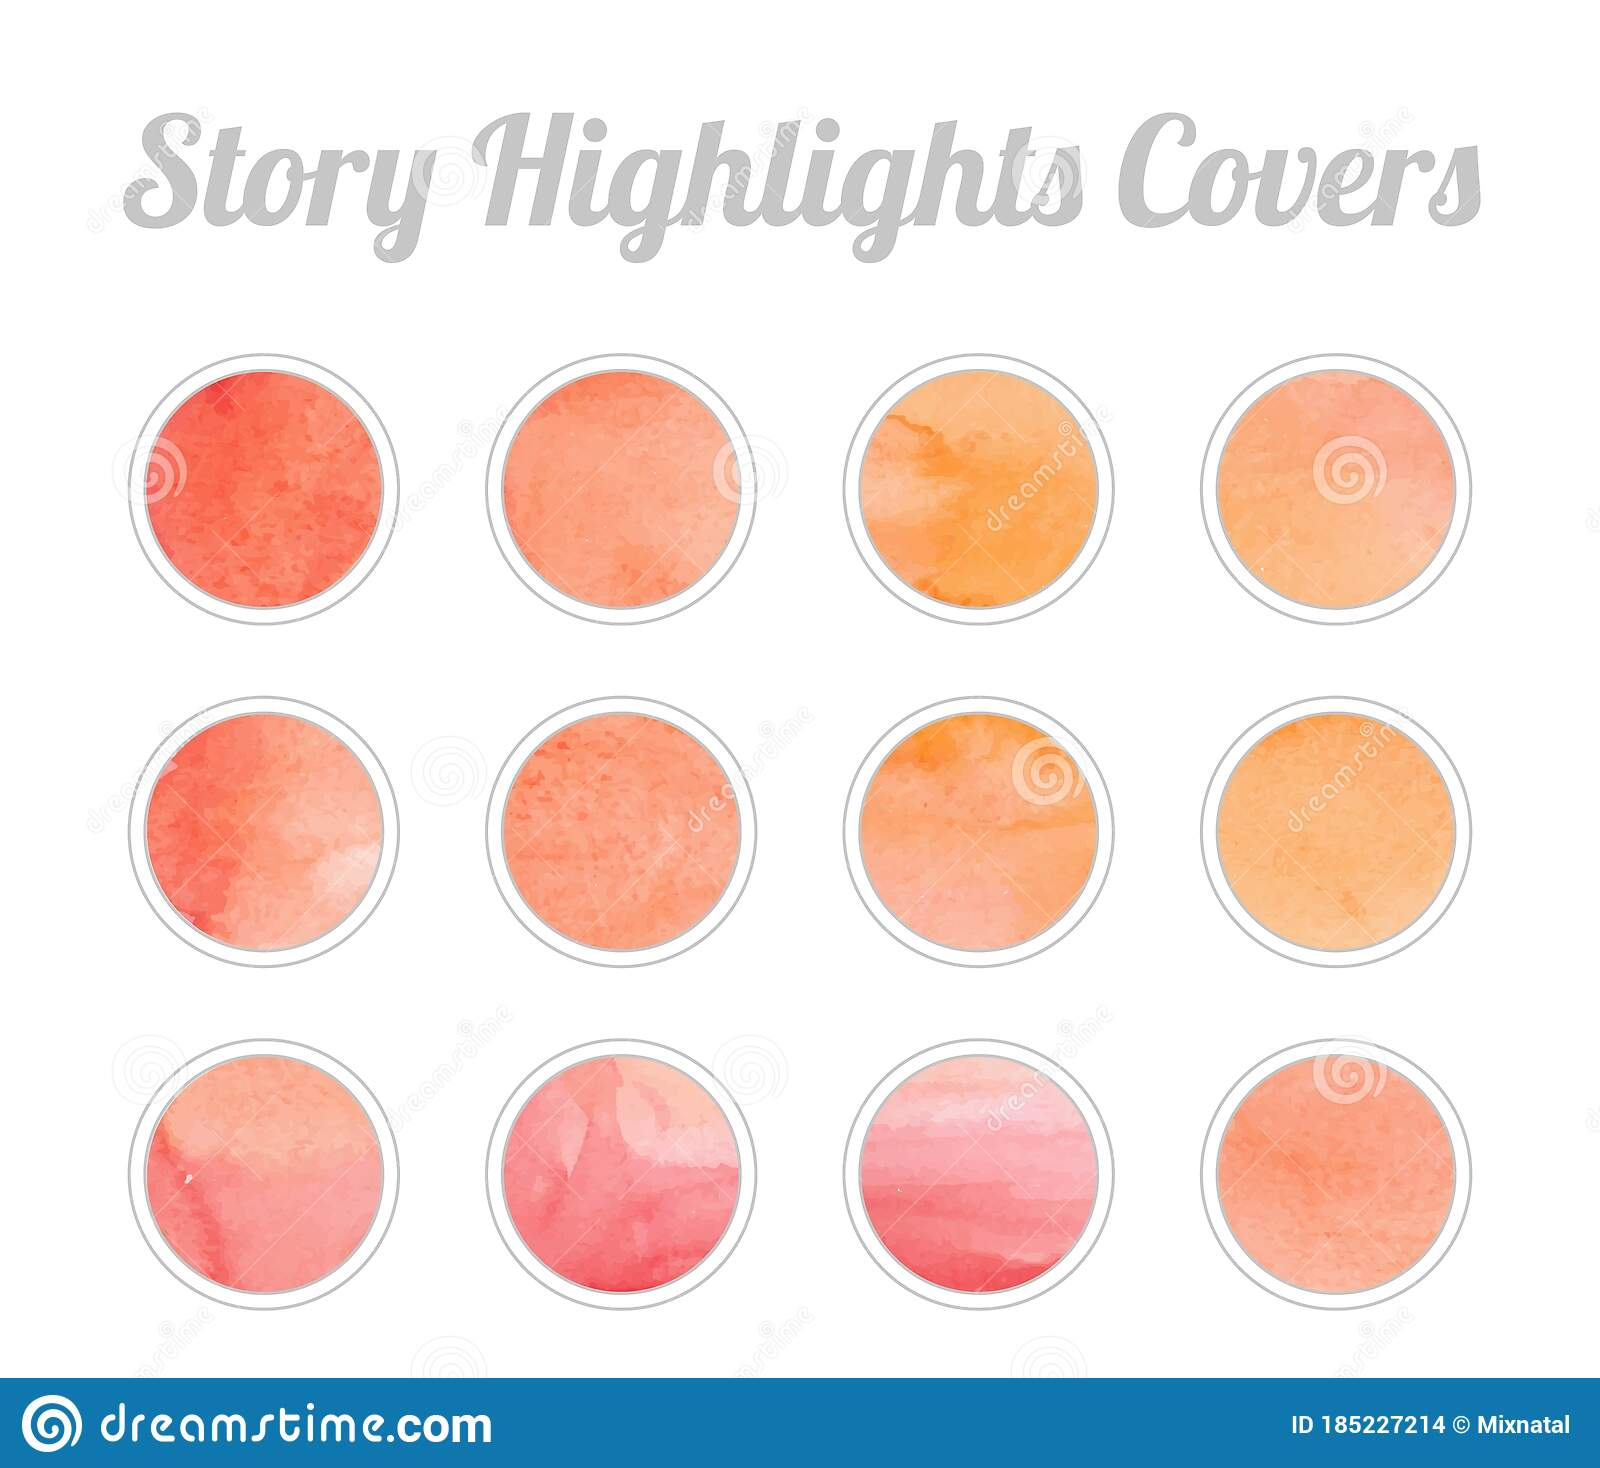 Set Of Story Highlights Covers Icons Colorful Watercolor Background Orange And Red Bright Colors Stock Vector Illustration Of Design Abstract 185227214